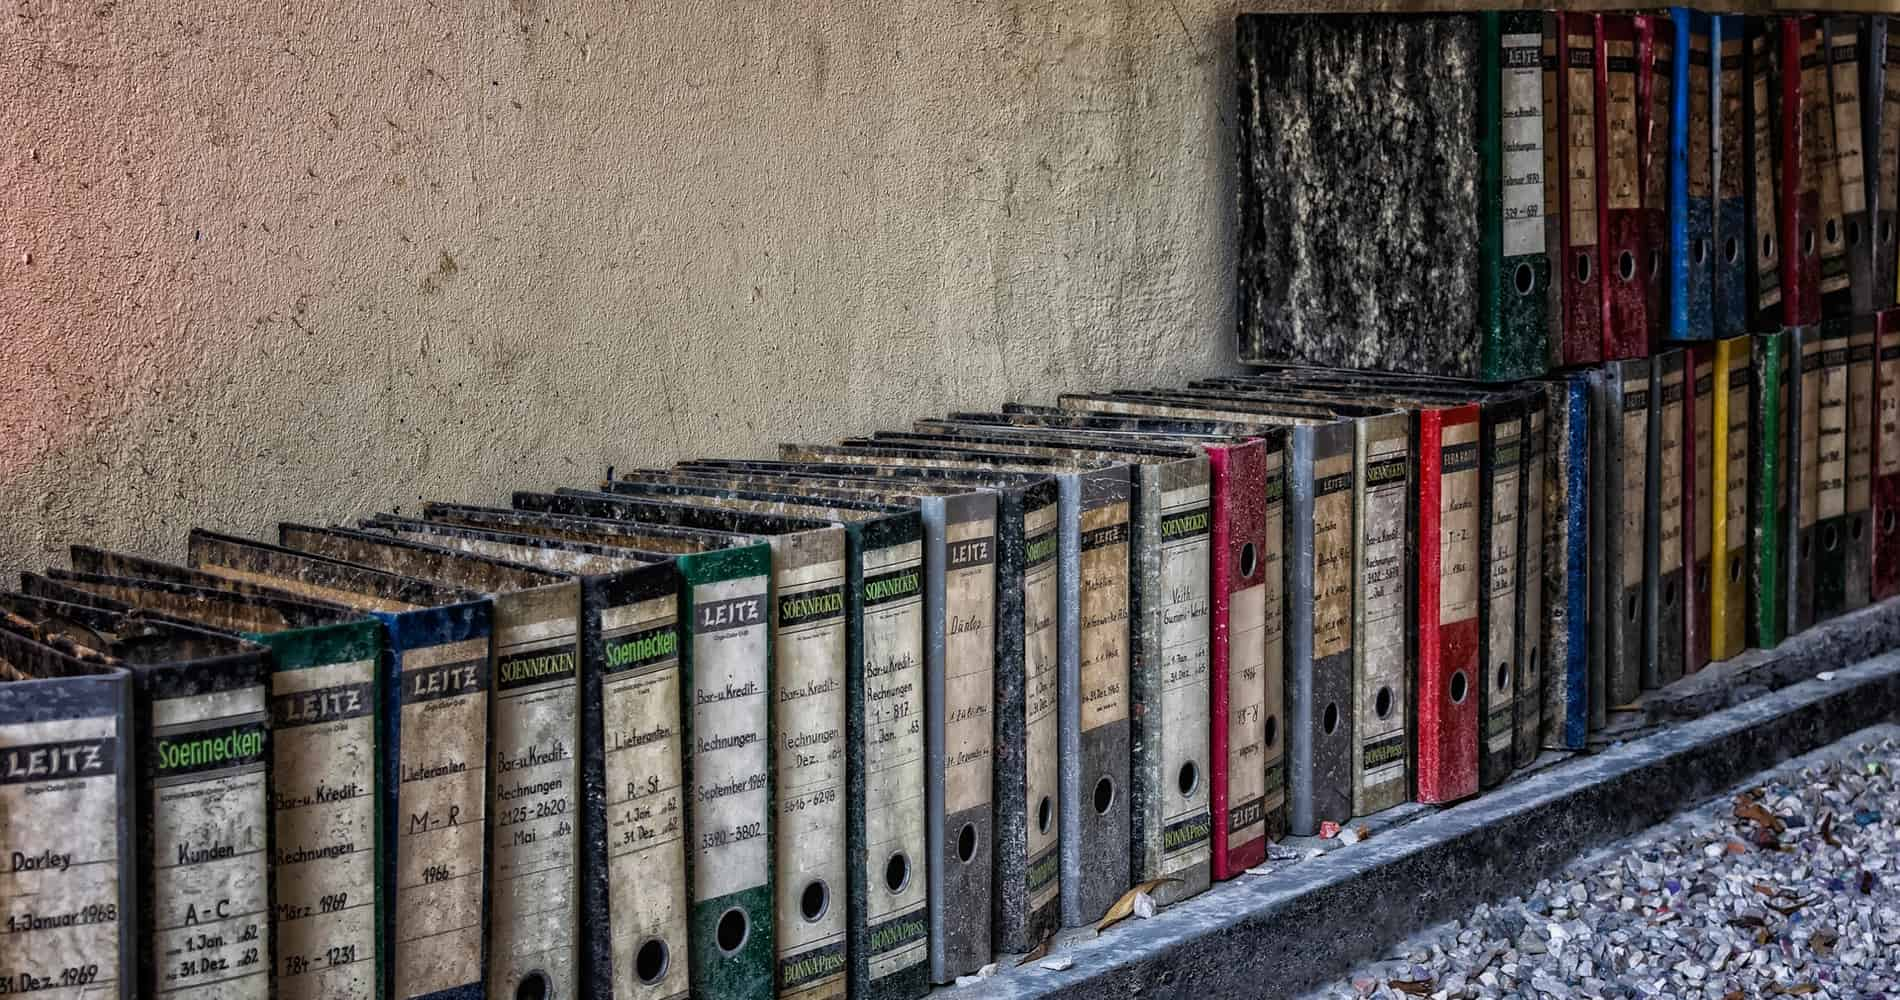 A line of old index binders lined up along a wall.